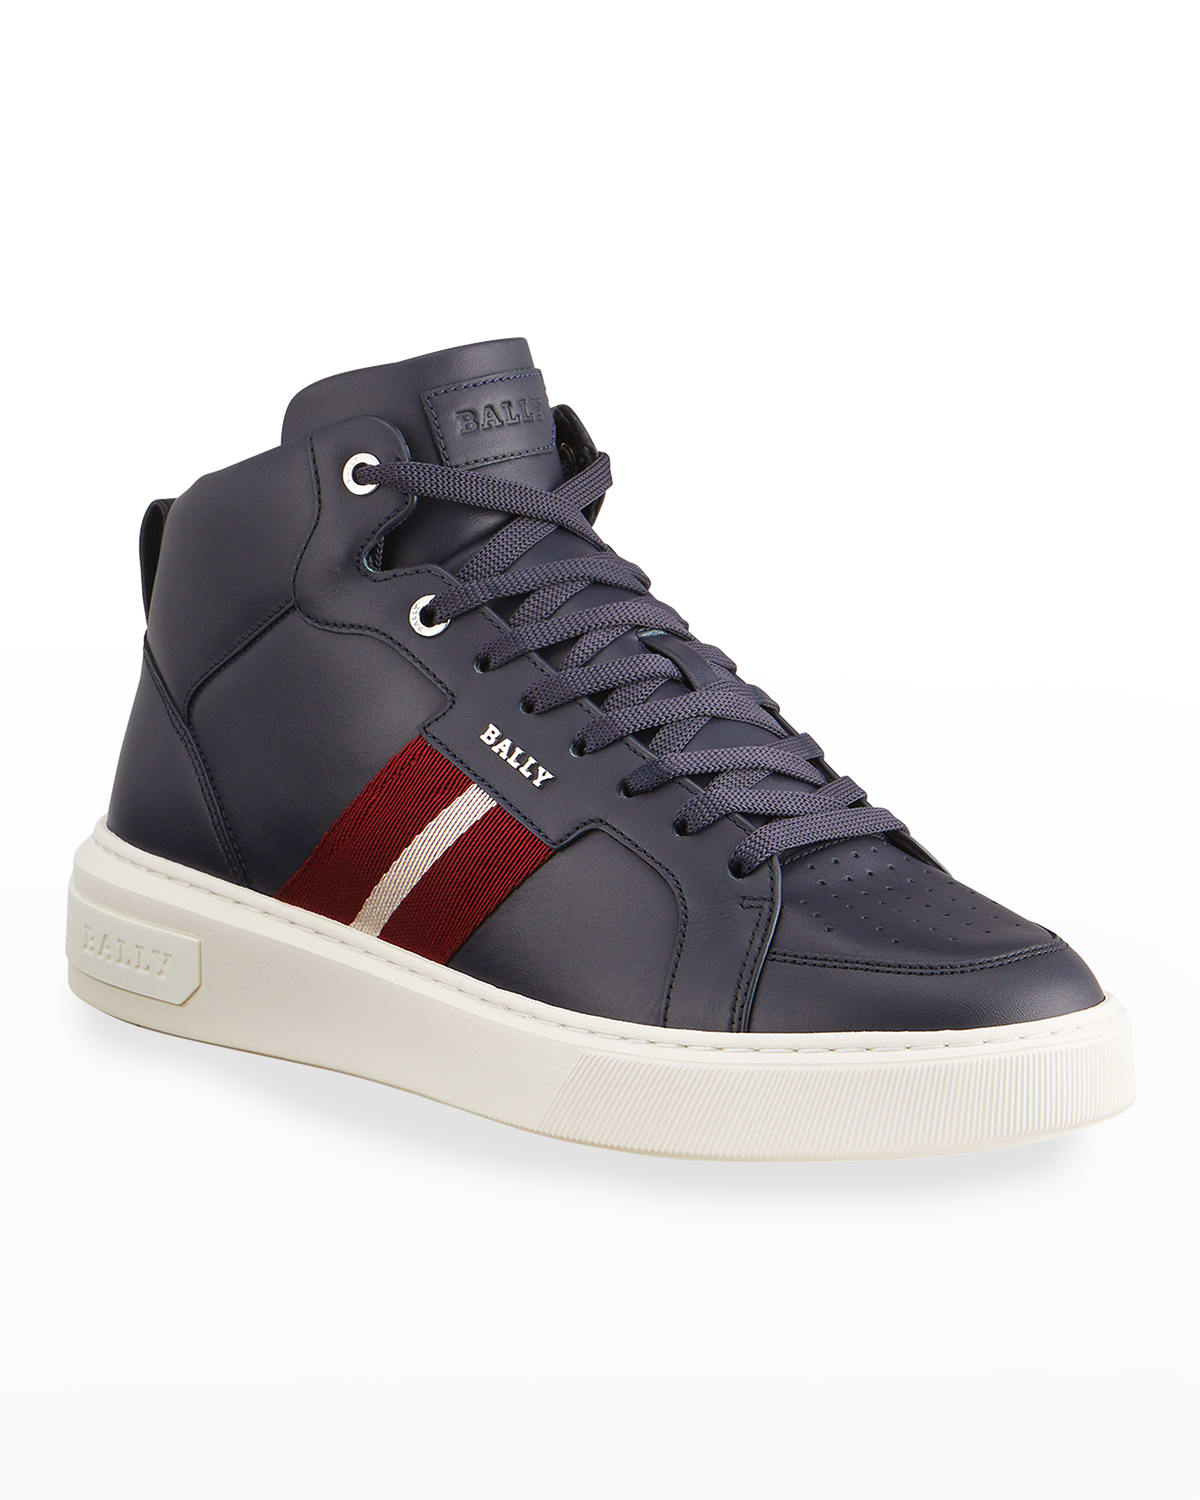 Men's Myles 29 Trainspotting Leather High-Top Sneakers